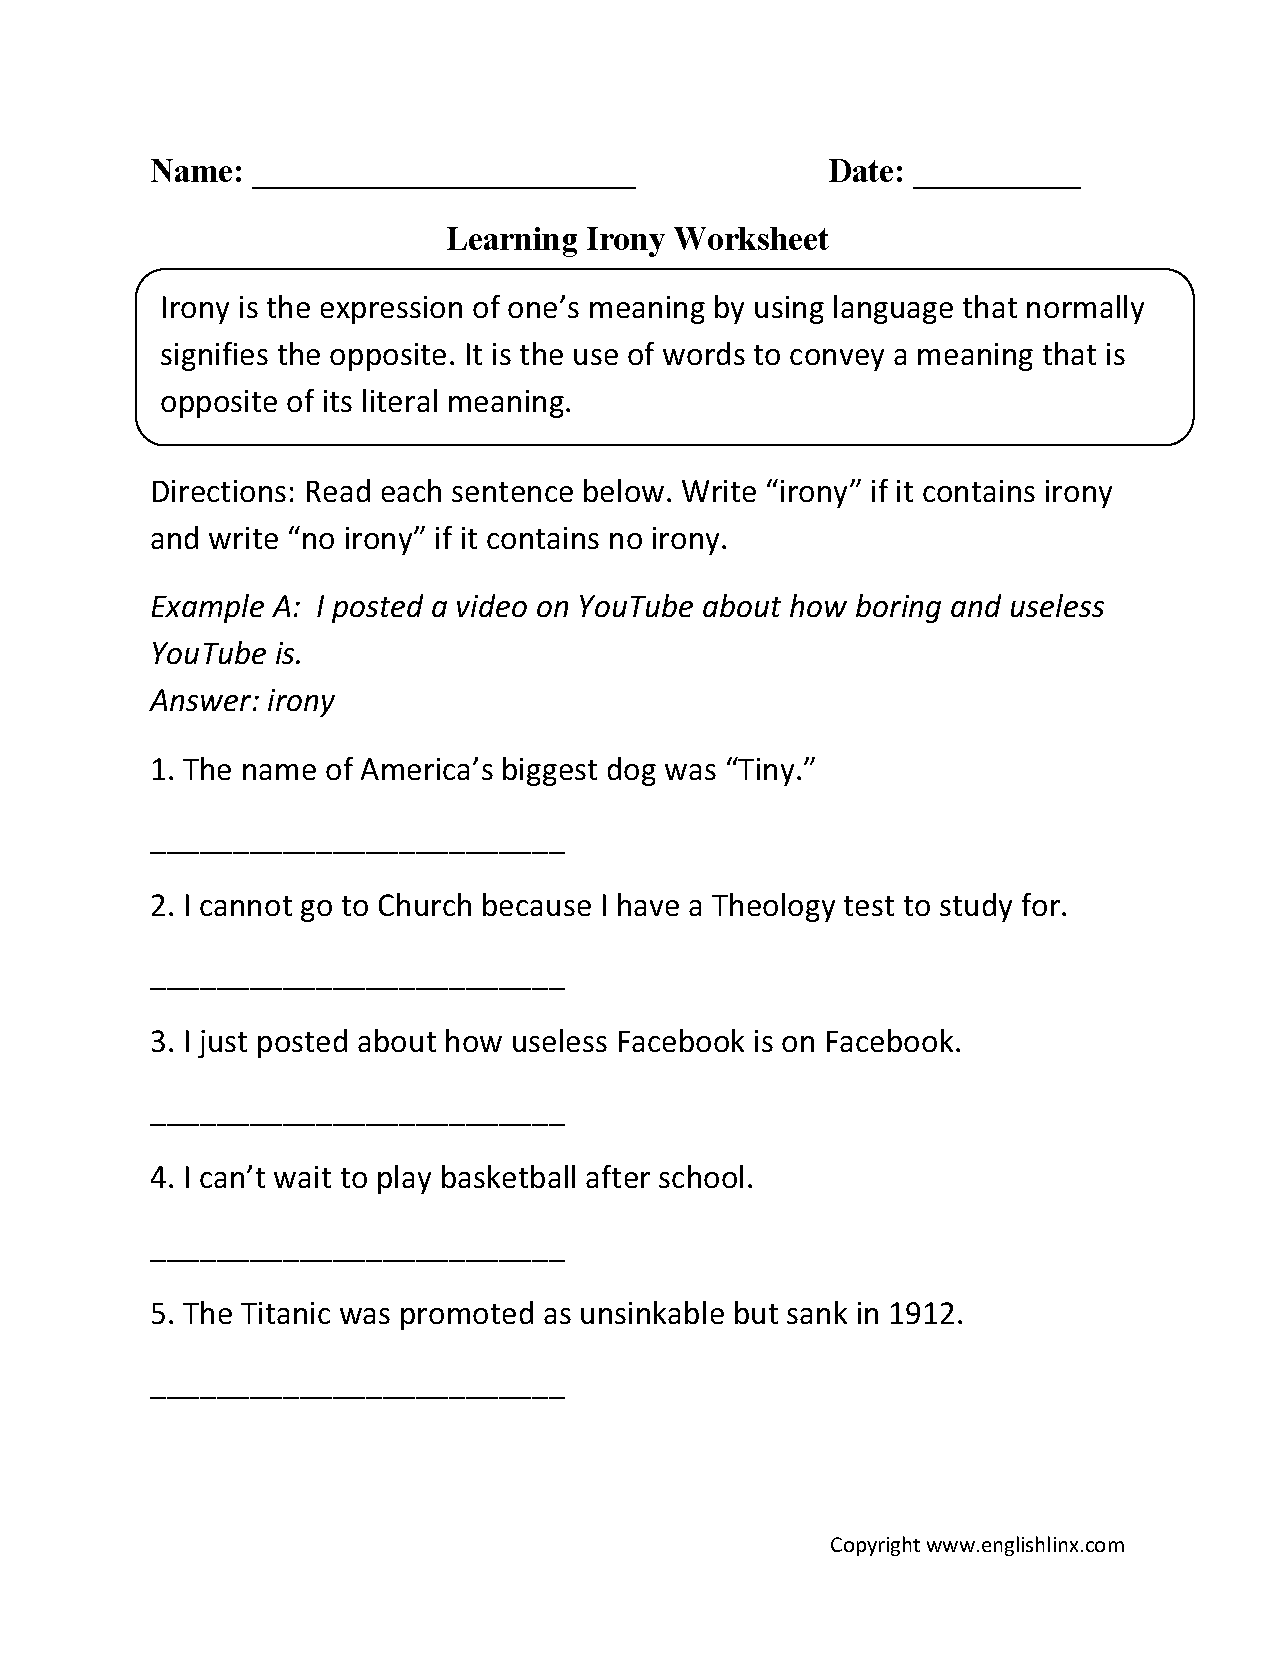 Learning Irony Worksheet Gardening Pinterest Figurative